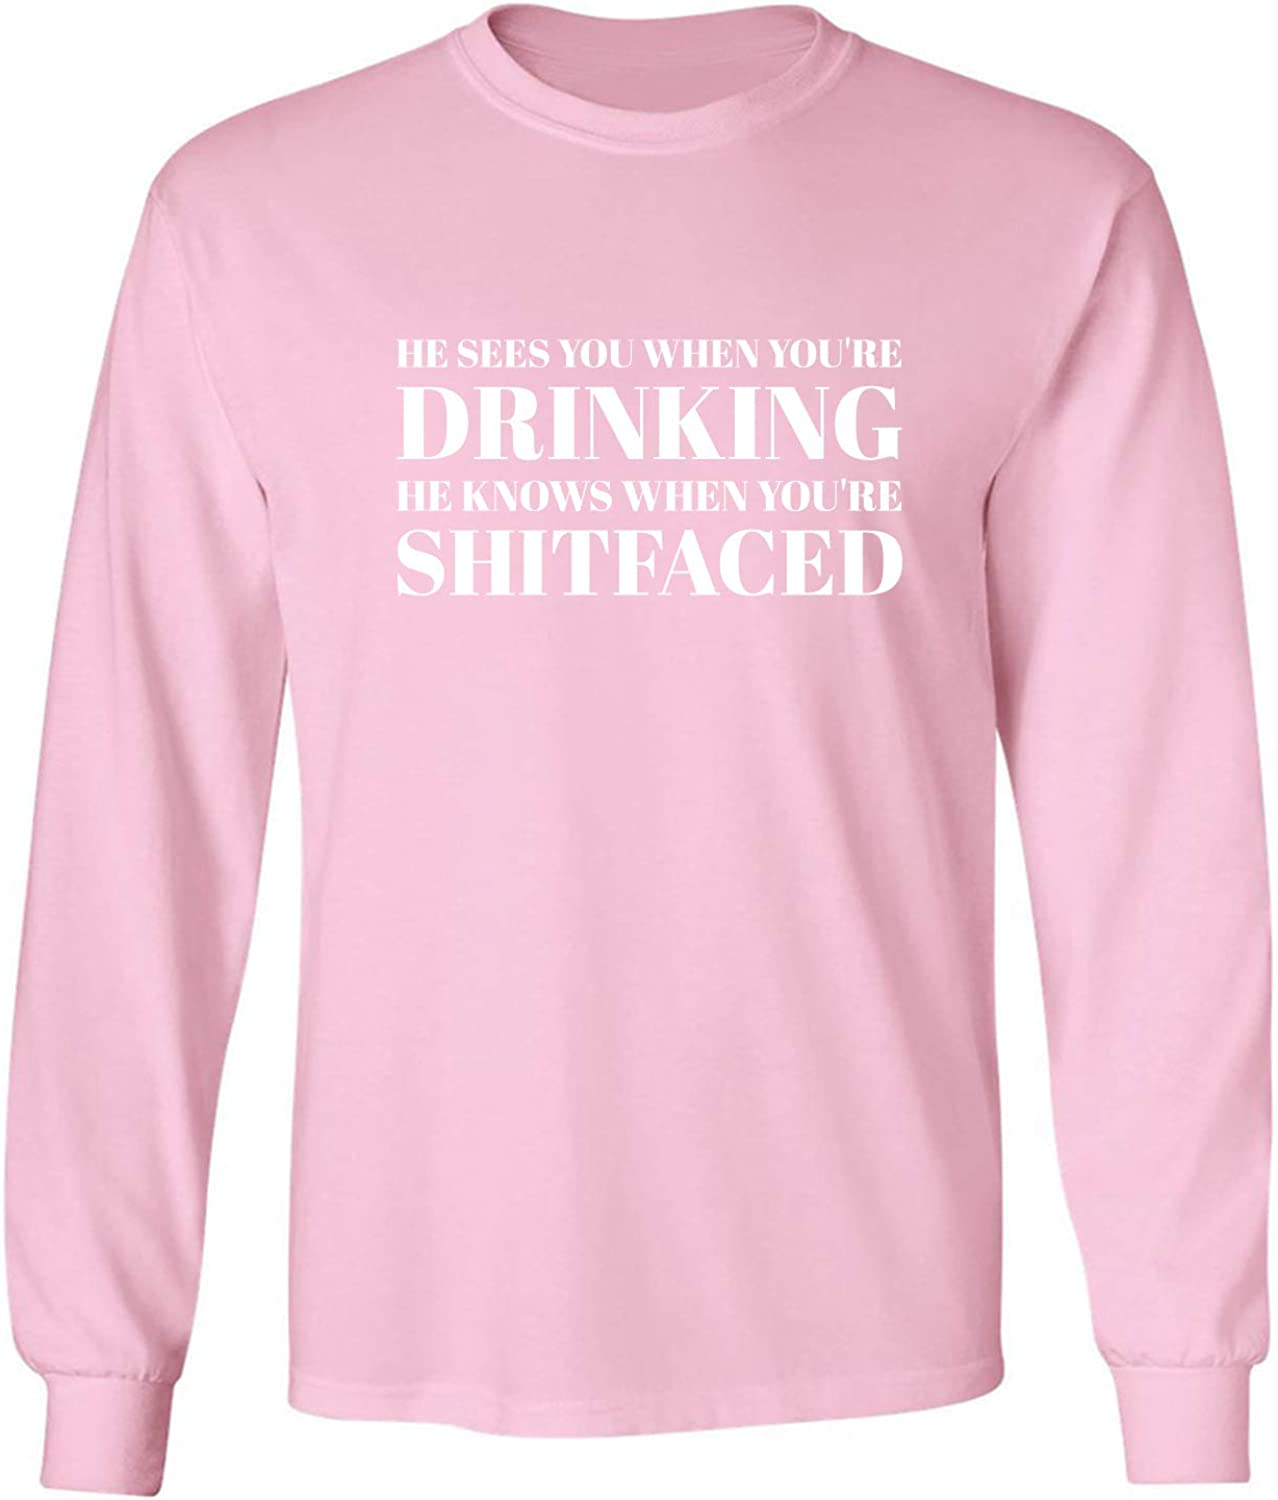 He Sees You When You're Drinking Adult Long Sleeve T-Shirt in Pink - XXX-Large